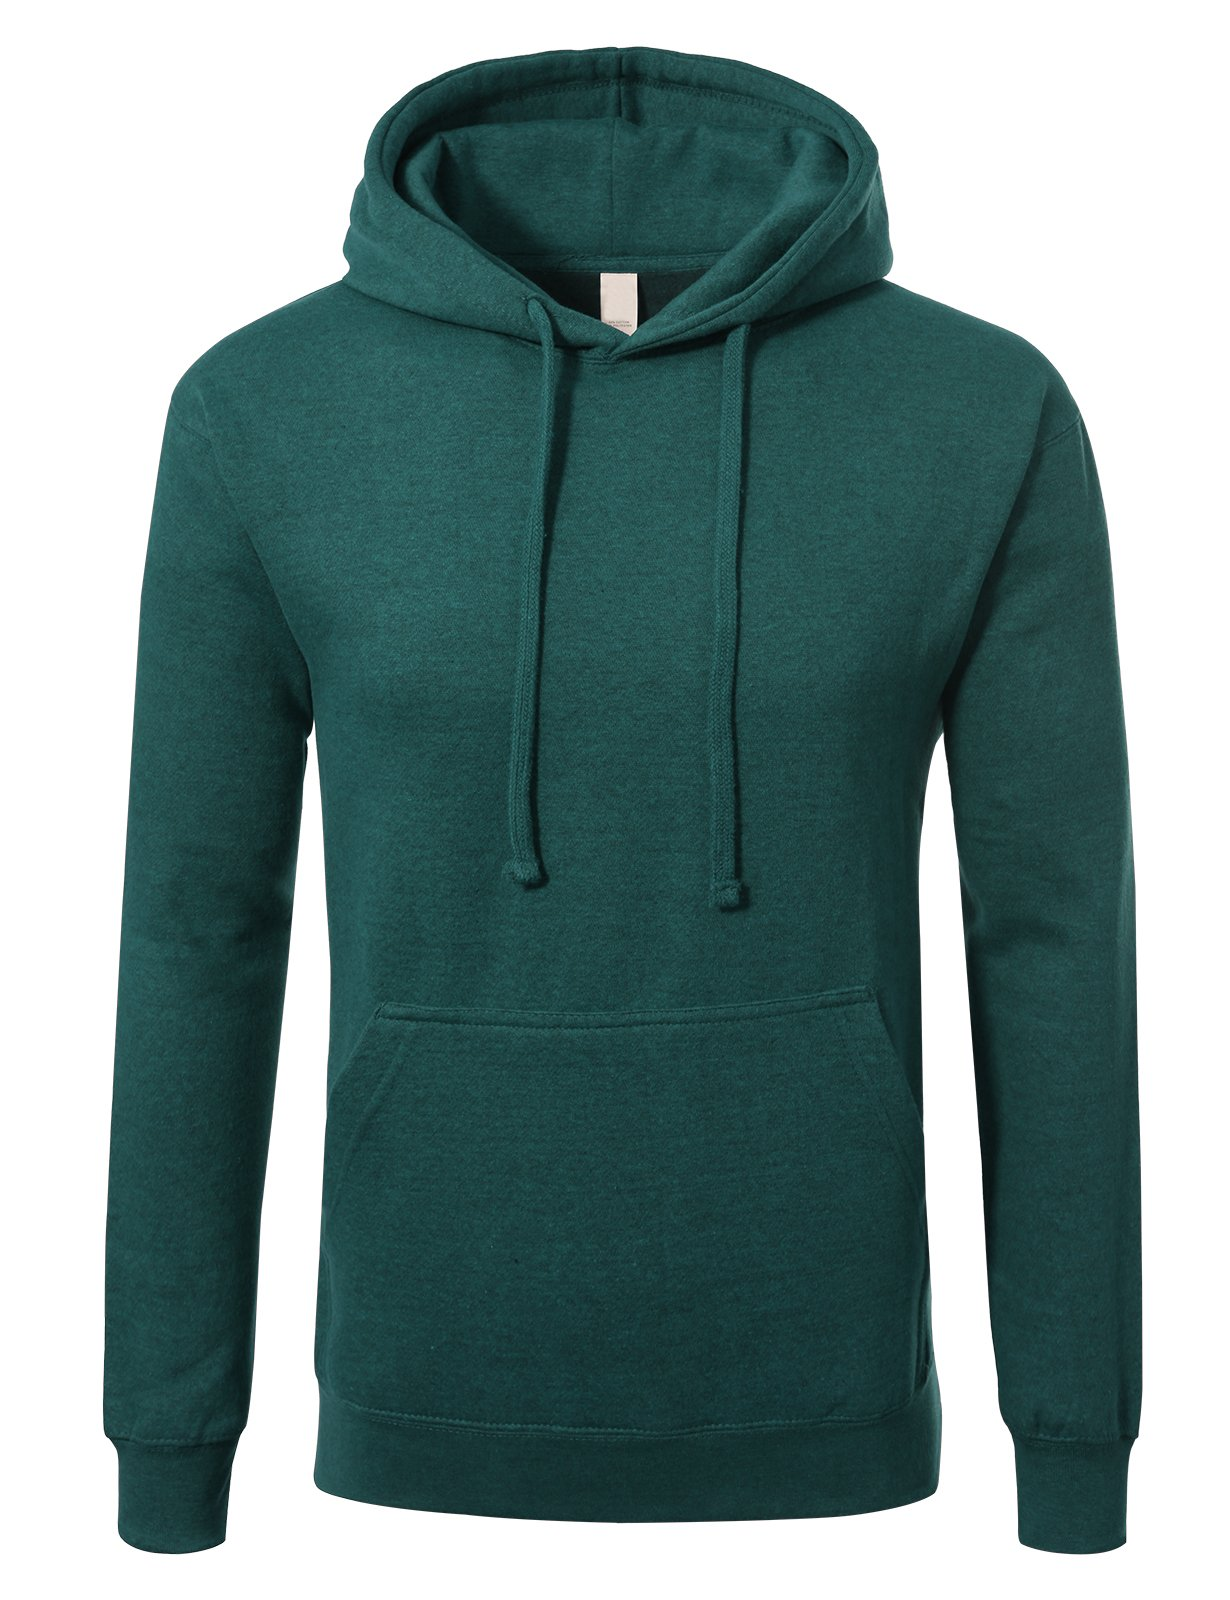 JD Apparel Men's Premium Heavyweight Pullover